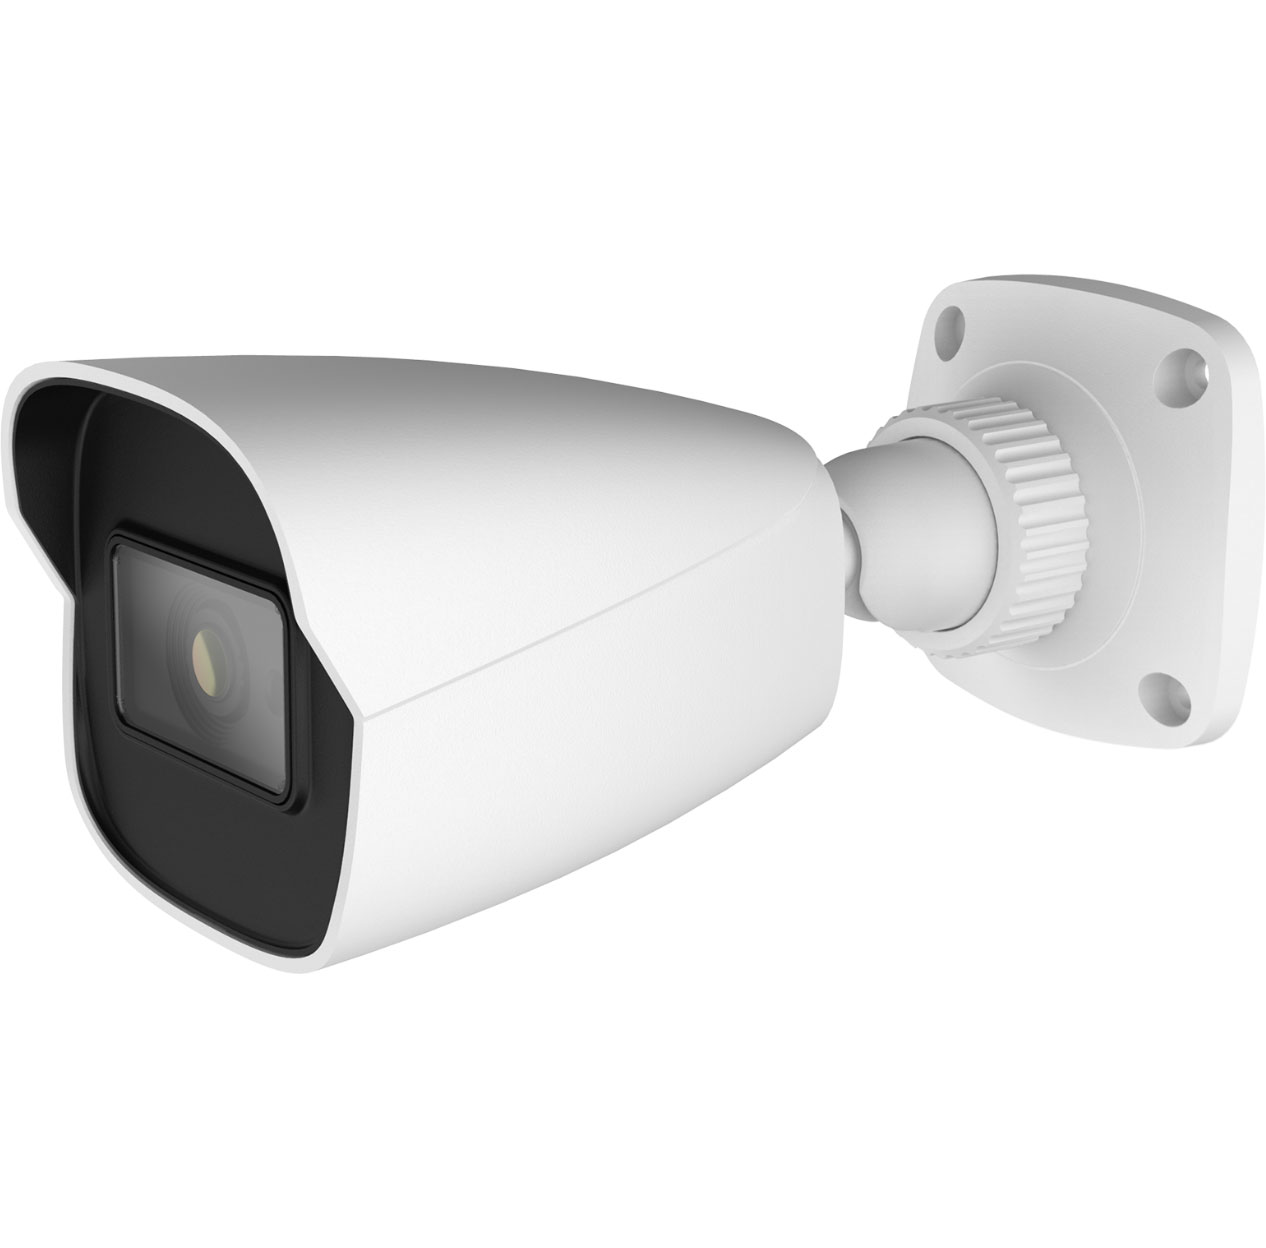 4K IR Bullet Camera, 4-IN-1, 2.8mm Fixed Lens OSD COC